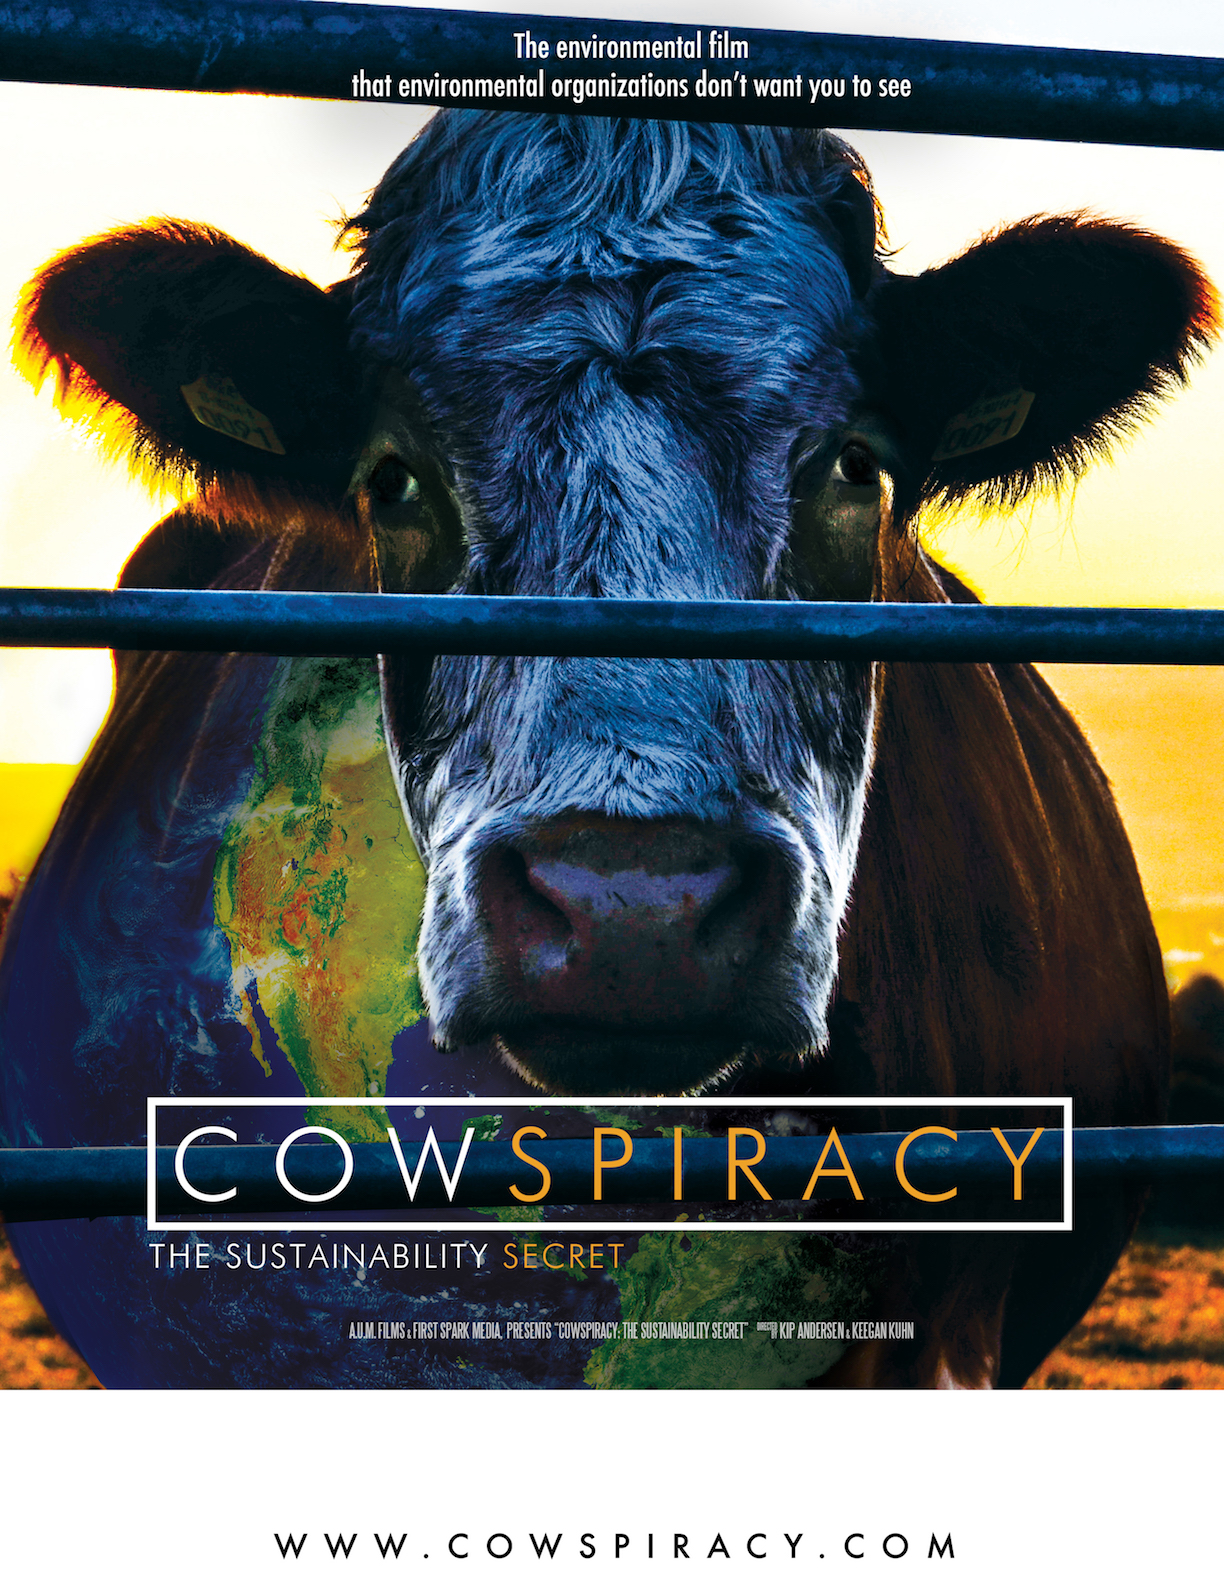 Cowspiracy offers a powerful and provocative indictment of animal agriculture as the number one global cause of carbon emissions into the atmosphere.